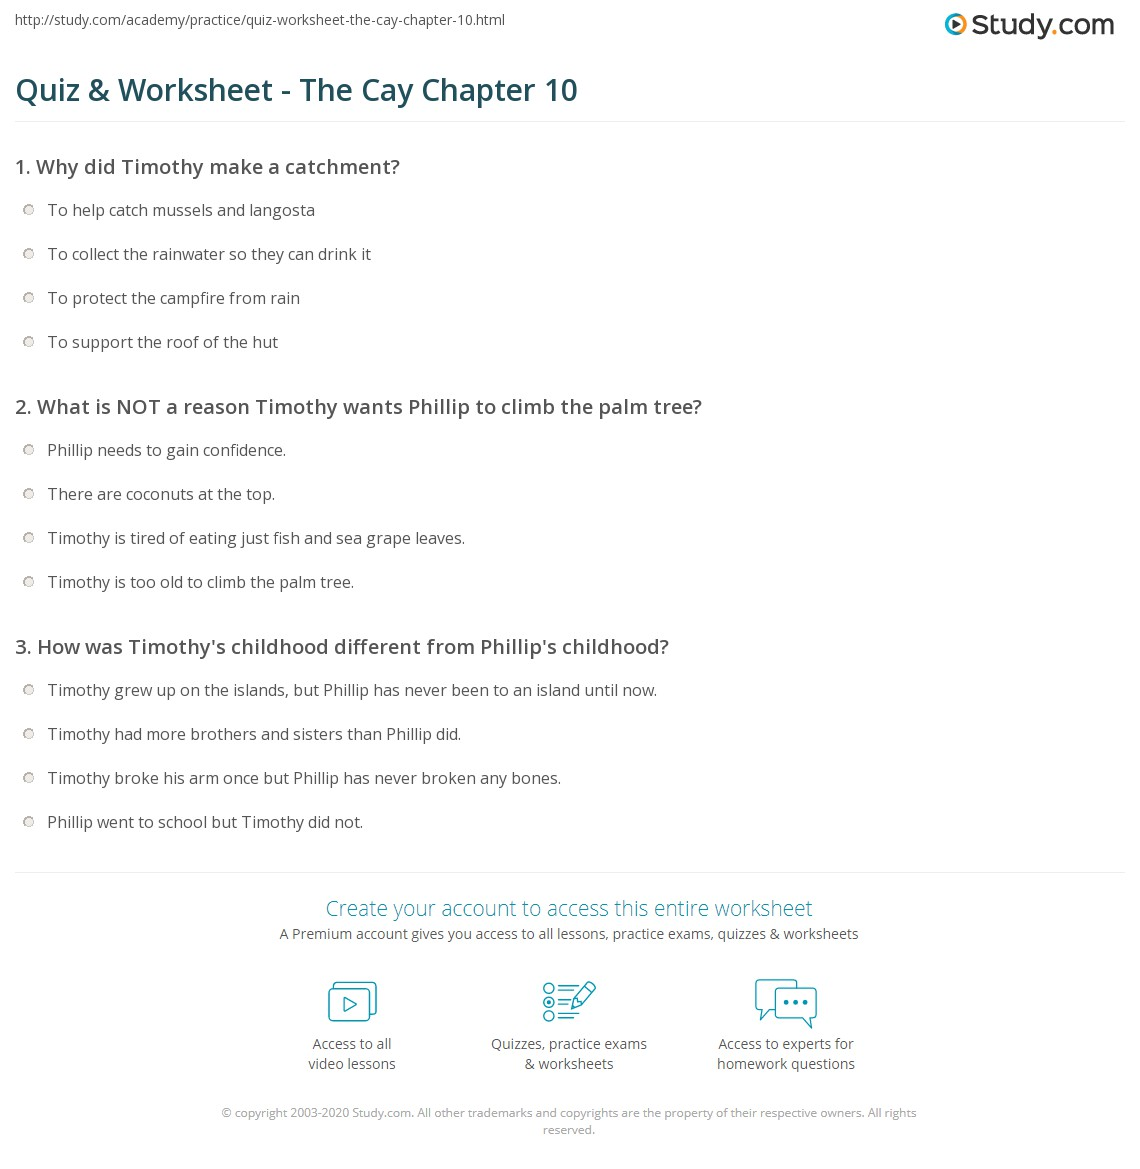 quiz worksheet the cay chapter 10 study com